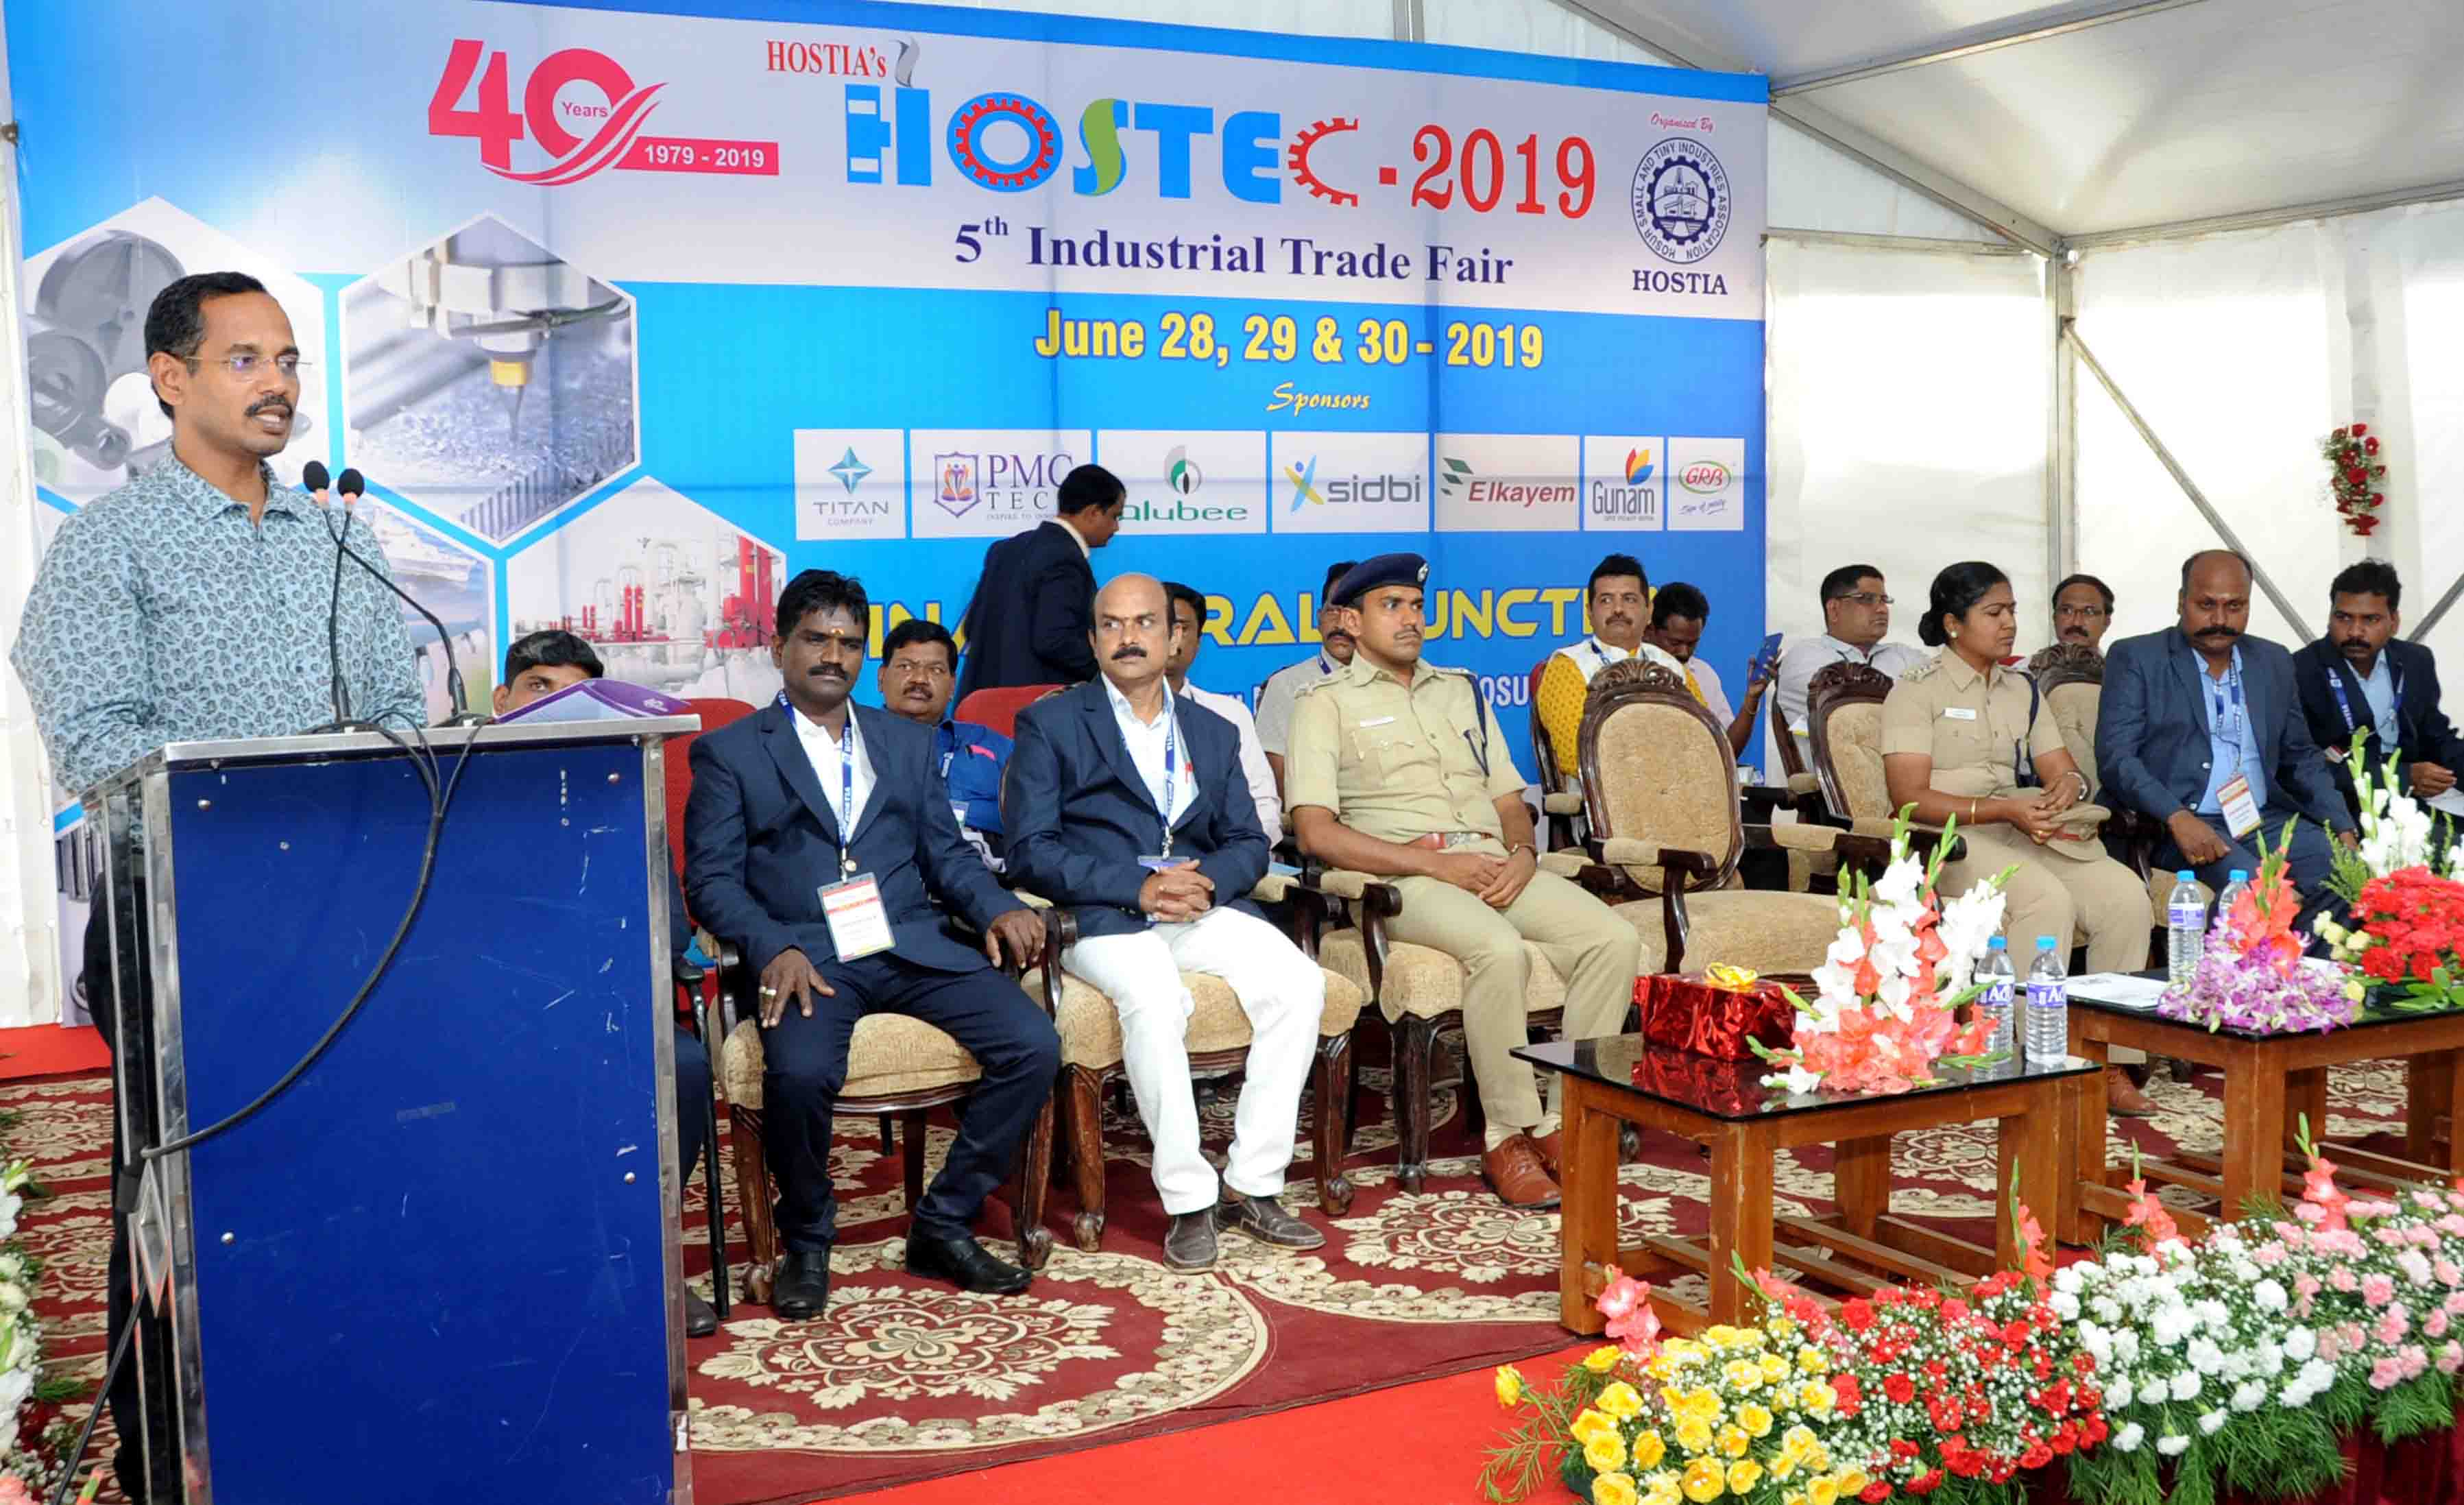 collector inaugurated hostec trade fair